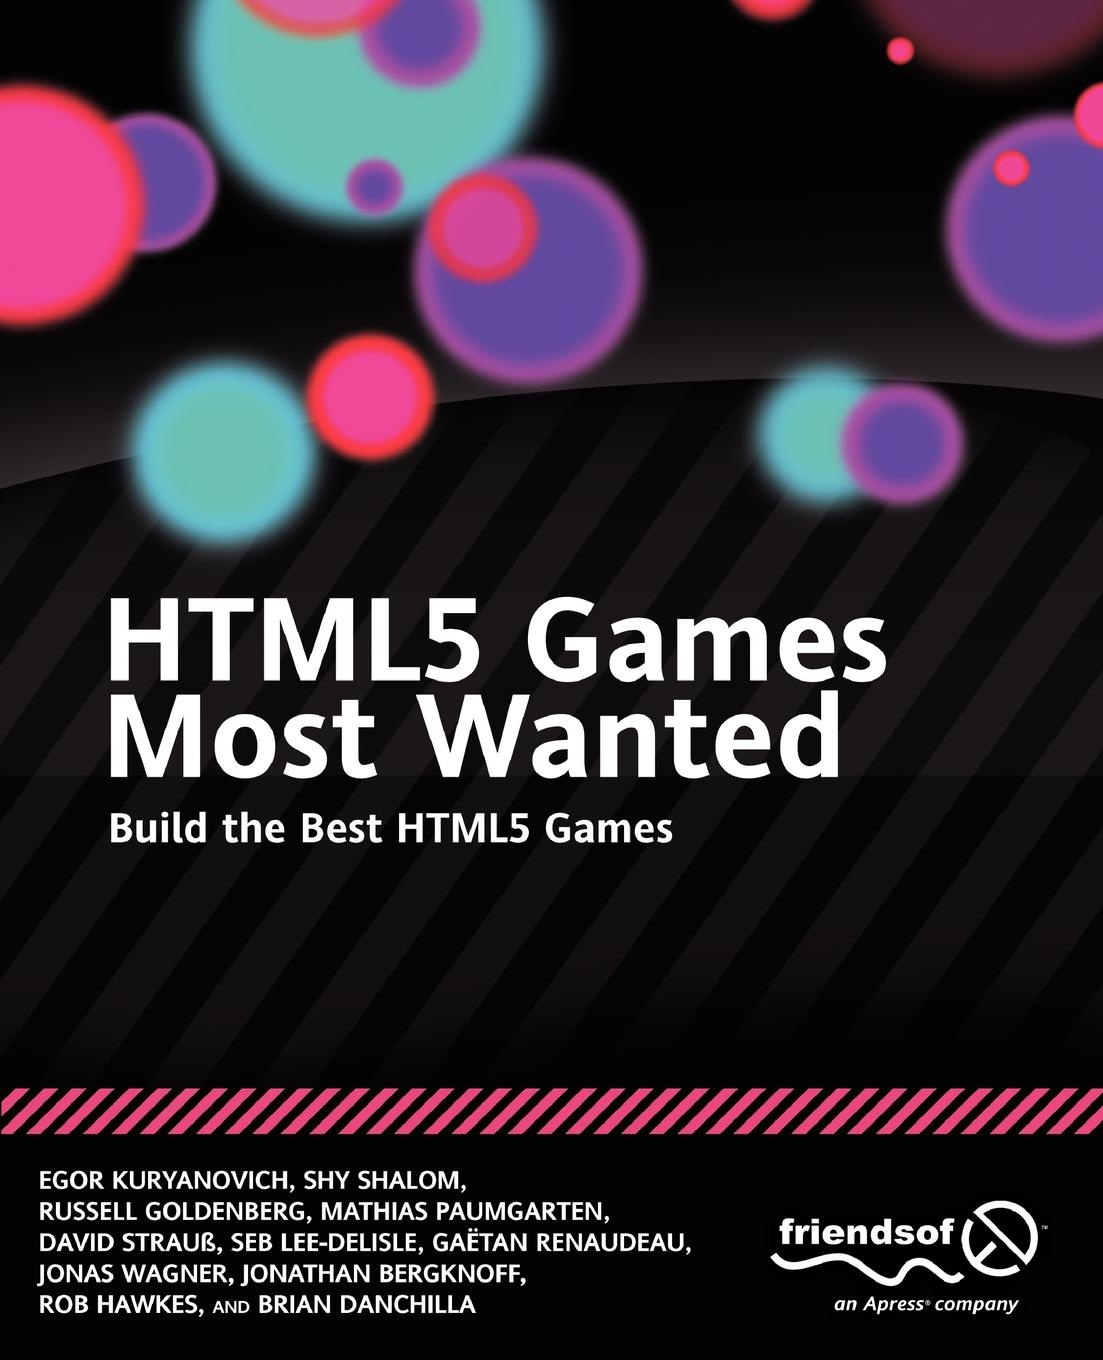 Egor Kuryanovich, Shy Shalom, Russell Goldenberg Html5 Games Most Wanted. Build the Best